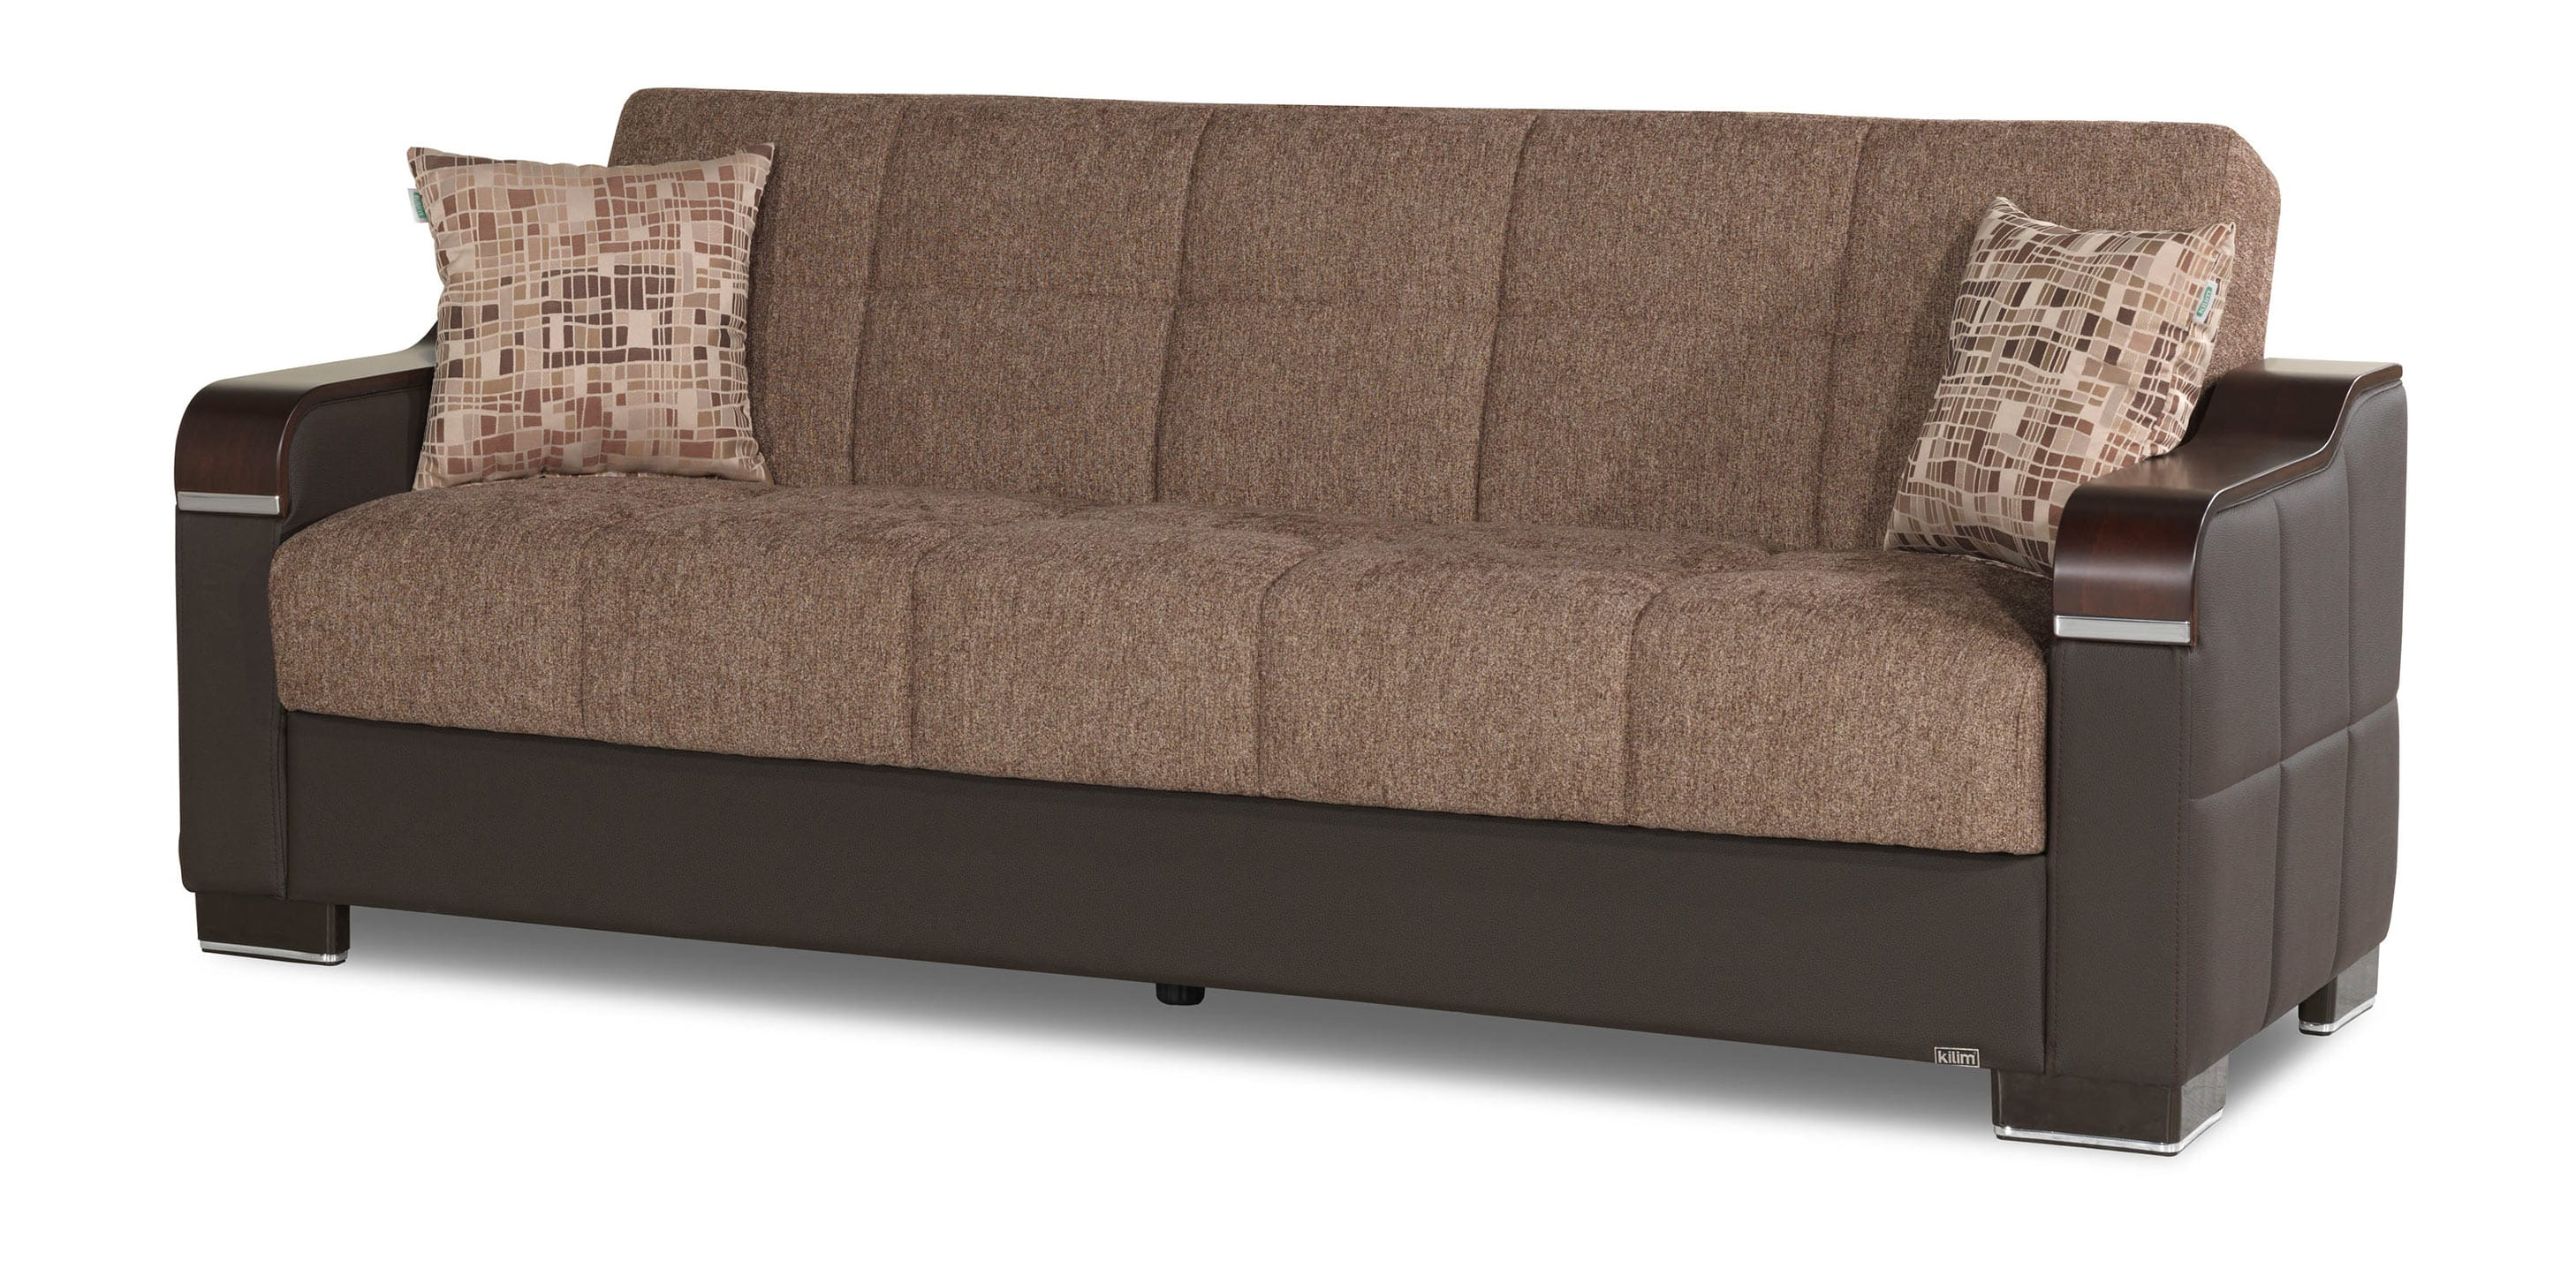 Uptown brown convertible sofa by casamode for Sofa convertible 2 places